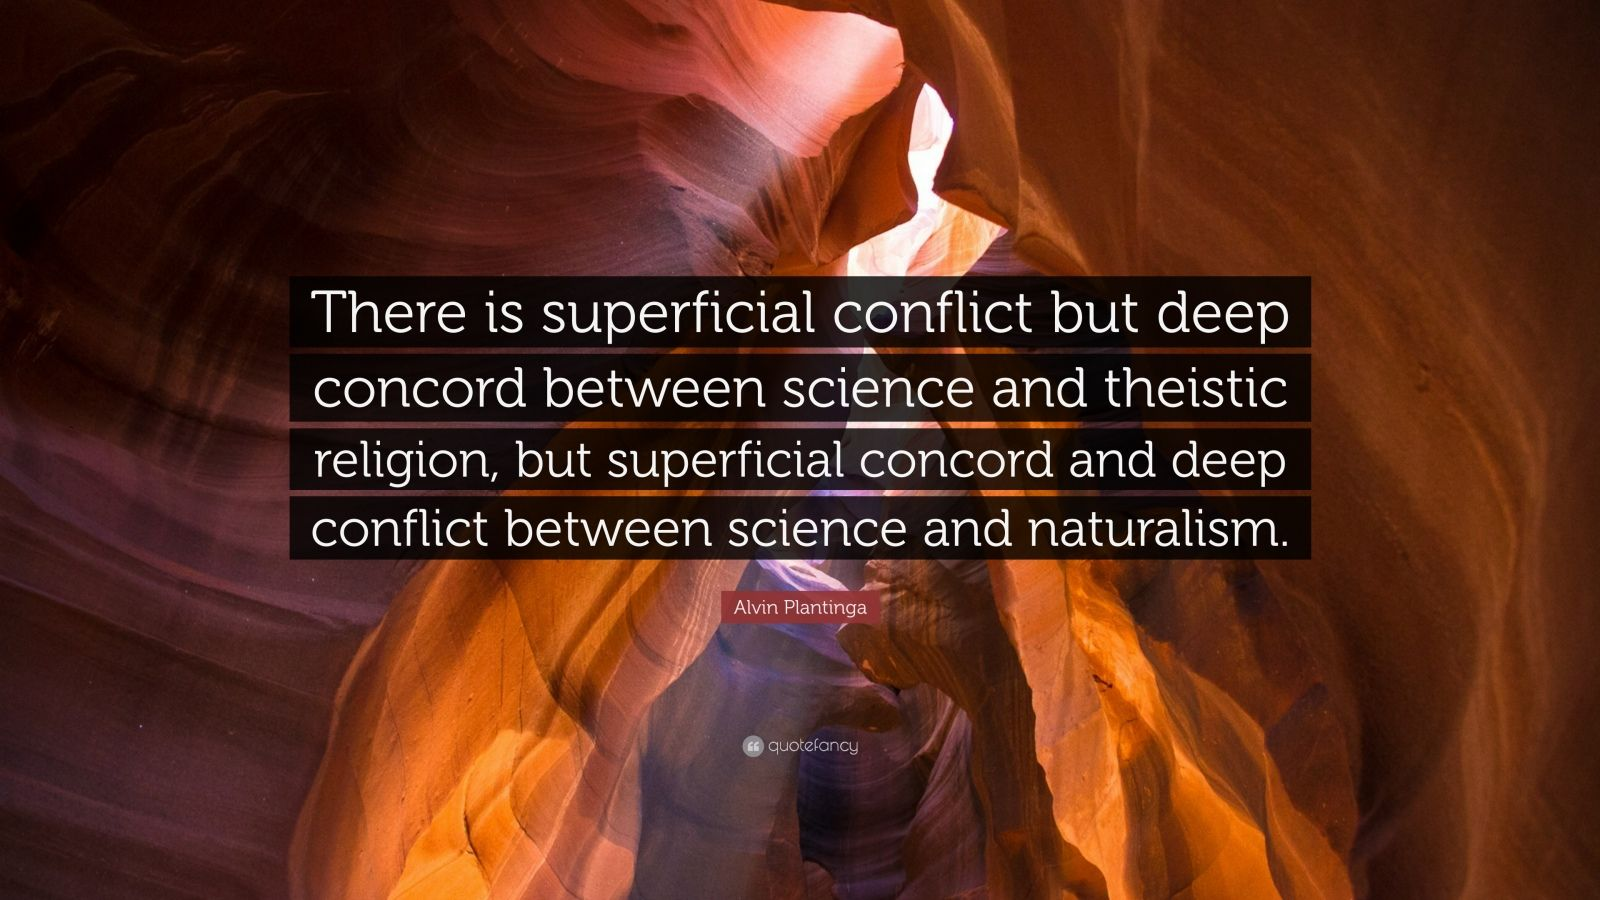 conflict between science and religion with